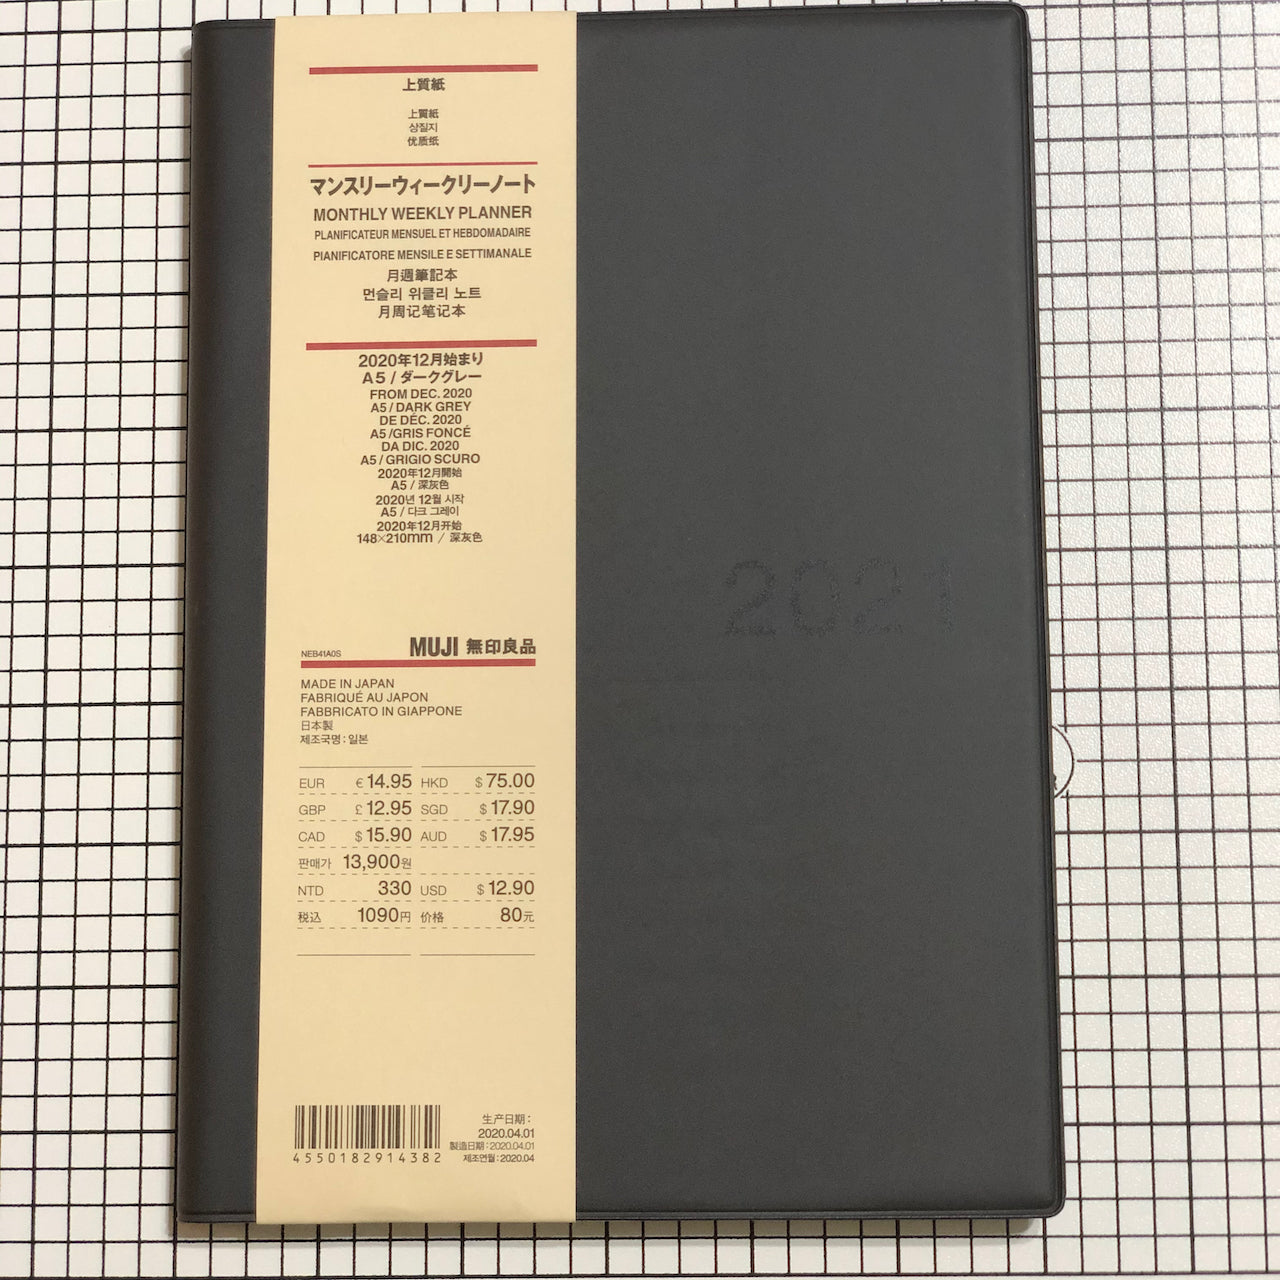 MUJI 2021 Monthly Weekly Yearly Planner DARK GRAY A5 - USA Seller